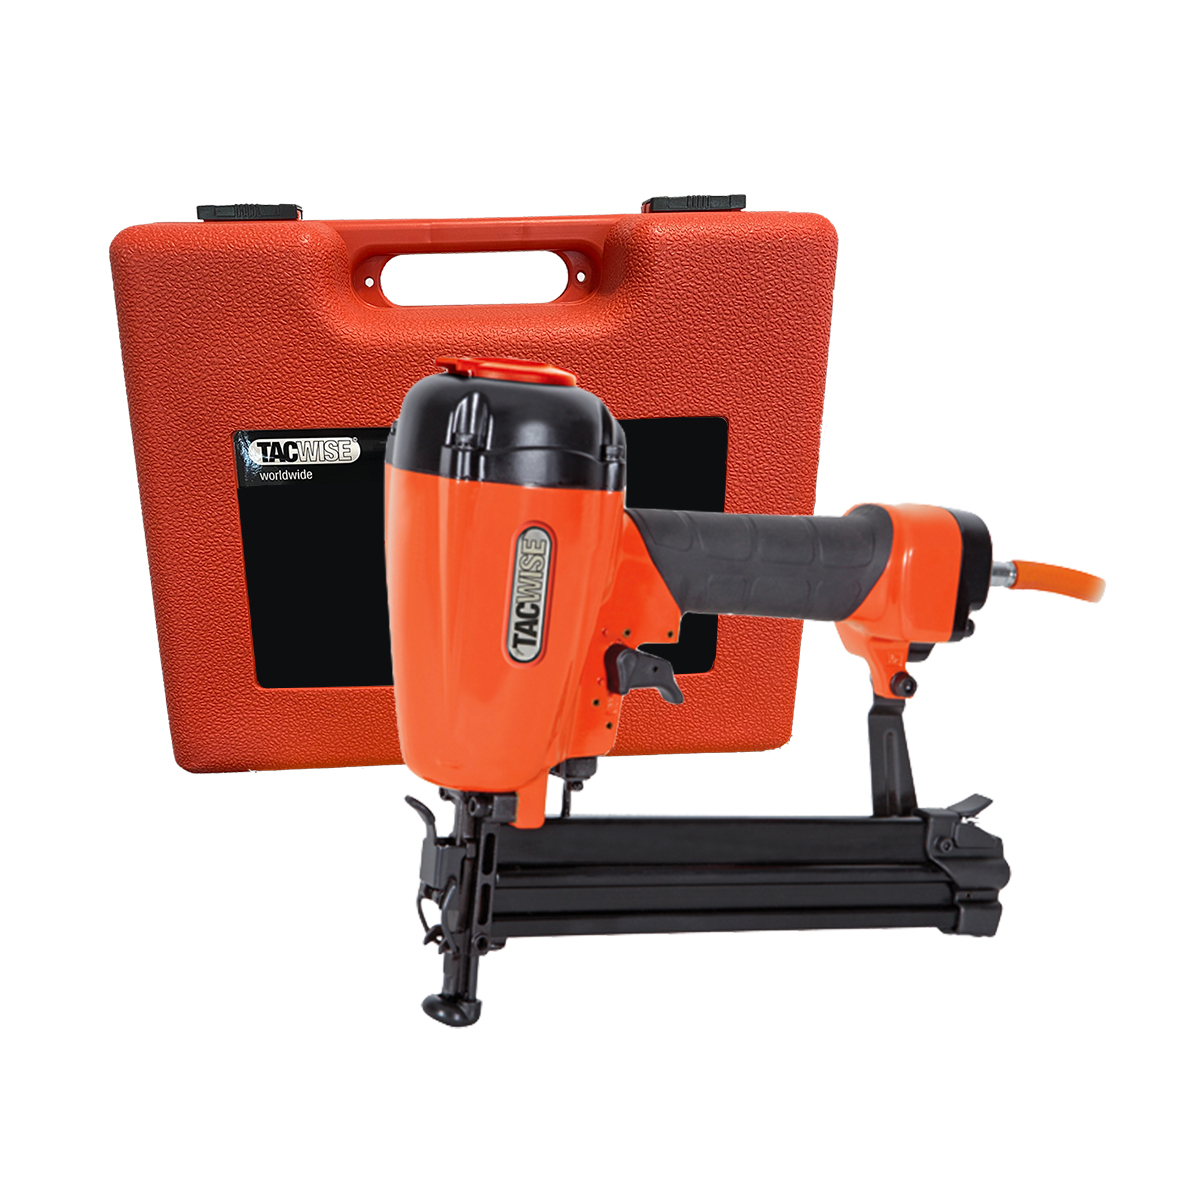 Tacwise D9040V 90/40mm Narrow Crown Stapler with Carry Case